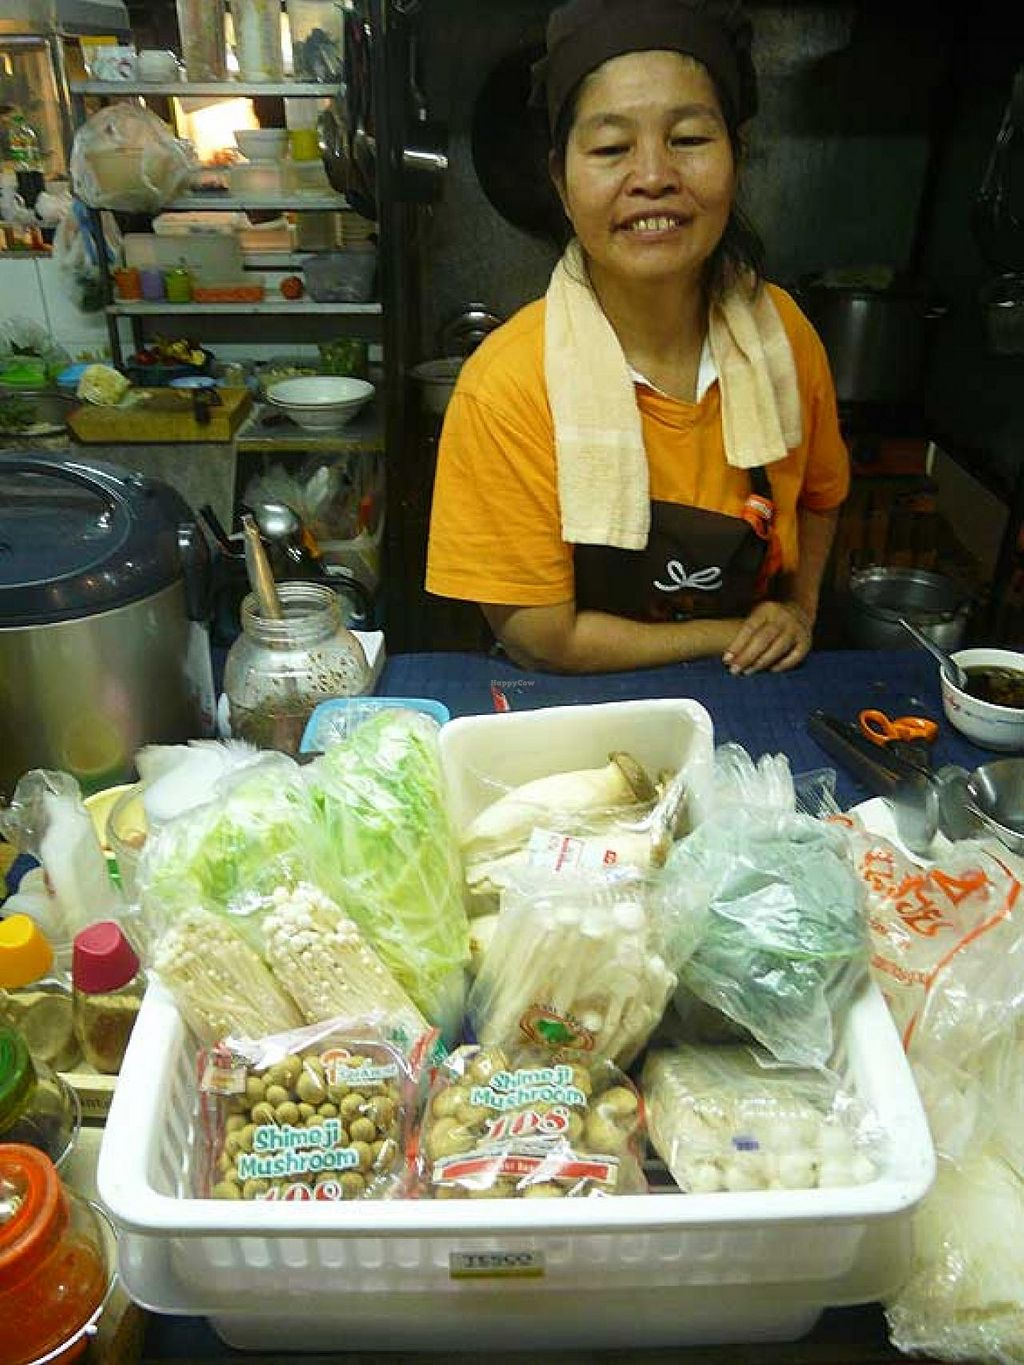 """Photo of CLOSED: Vegetarian Food Stall  by <a href=""""/members/profile/The%20Hammer"""">The Hammer</a> <br/>Fresh mushrooms and fresh veggies <br/> January 19, 2014  - <a href='/contact/abuse/image/44619/62753'>Report</a>"""